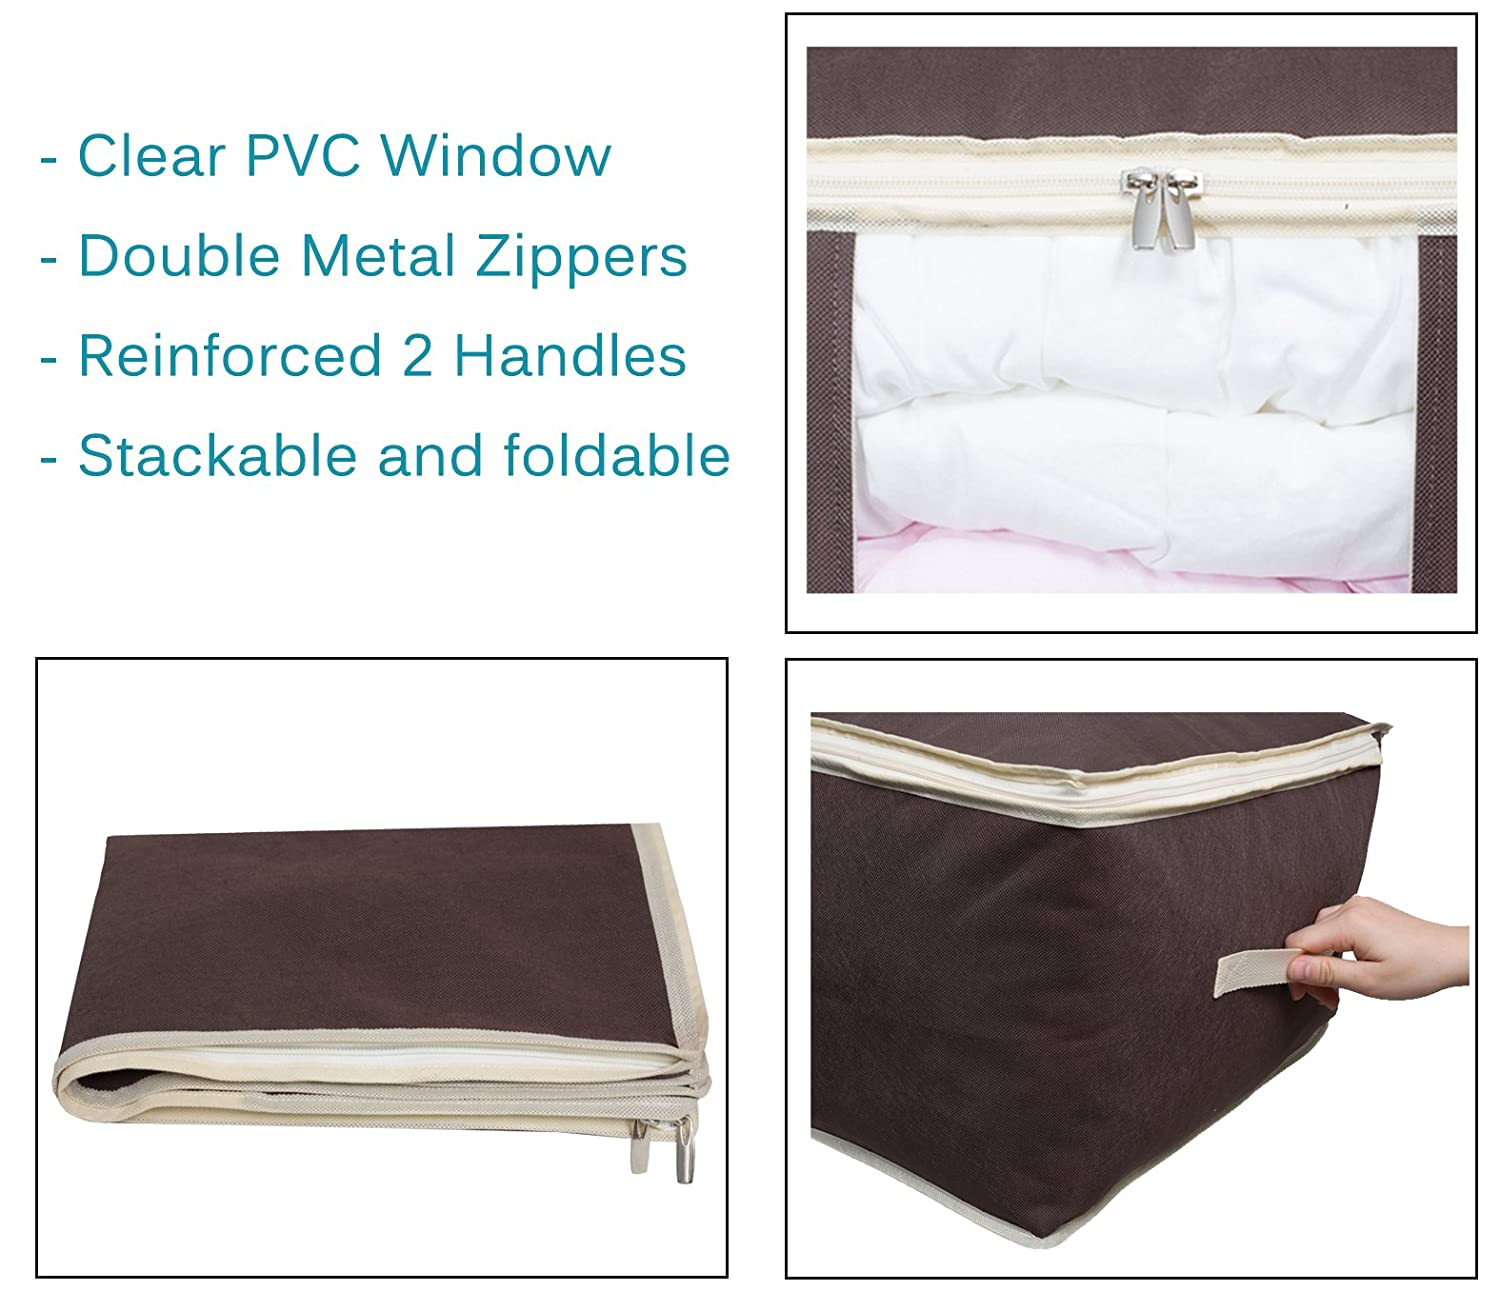 Shelves Jumbo Blanket Storage Bag Organizer Comforter Clothes Storage Containers Tidy Up Your Closets Transparent Window Bedrooms